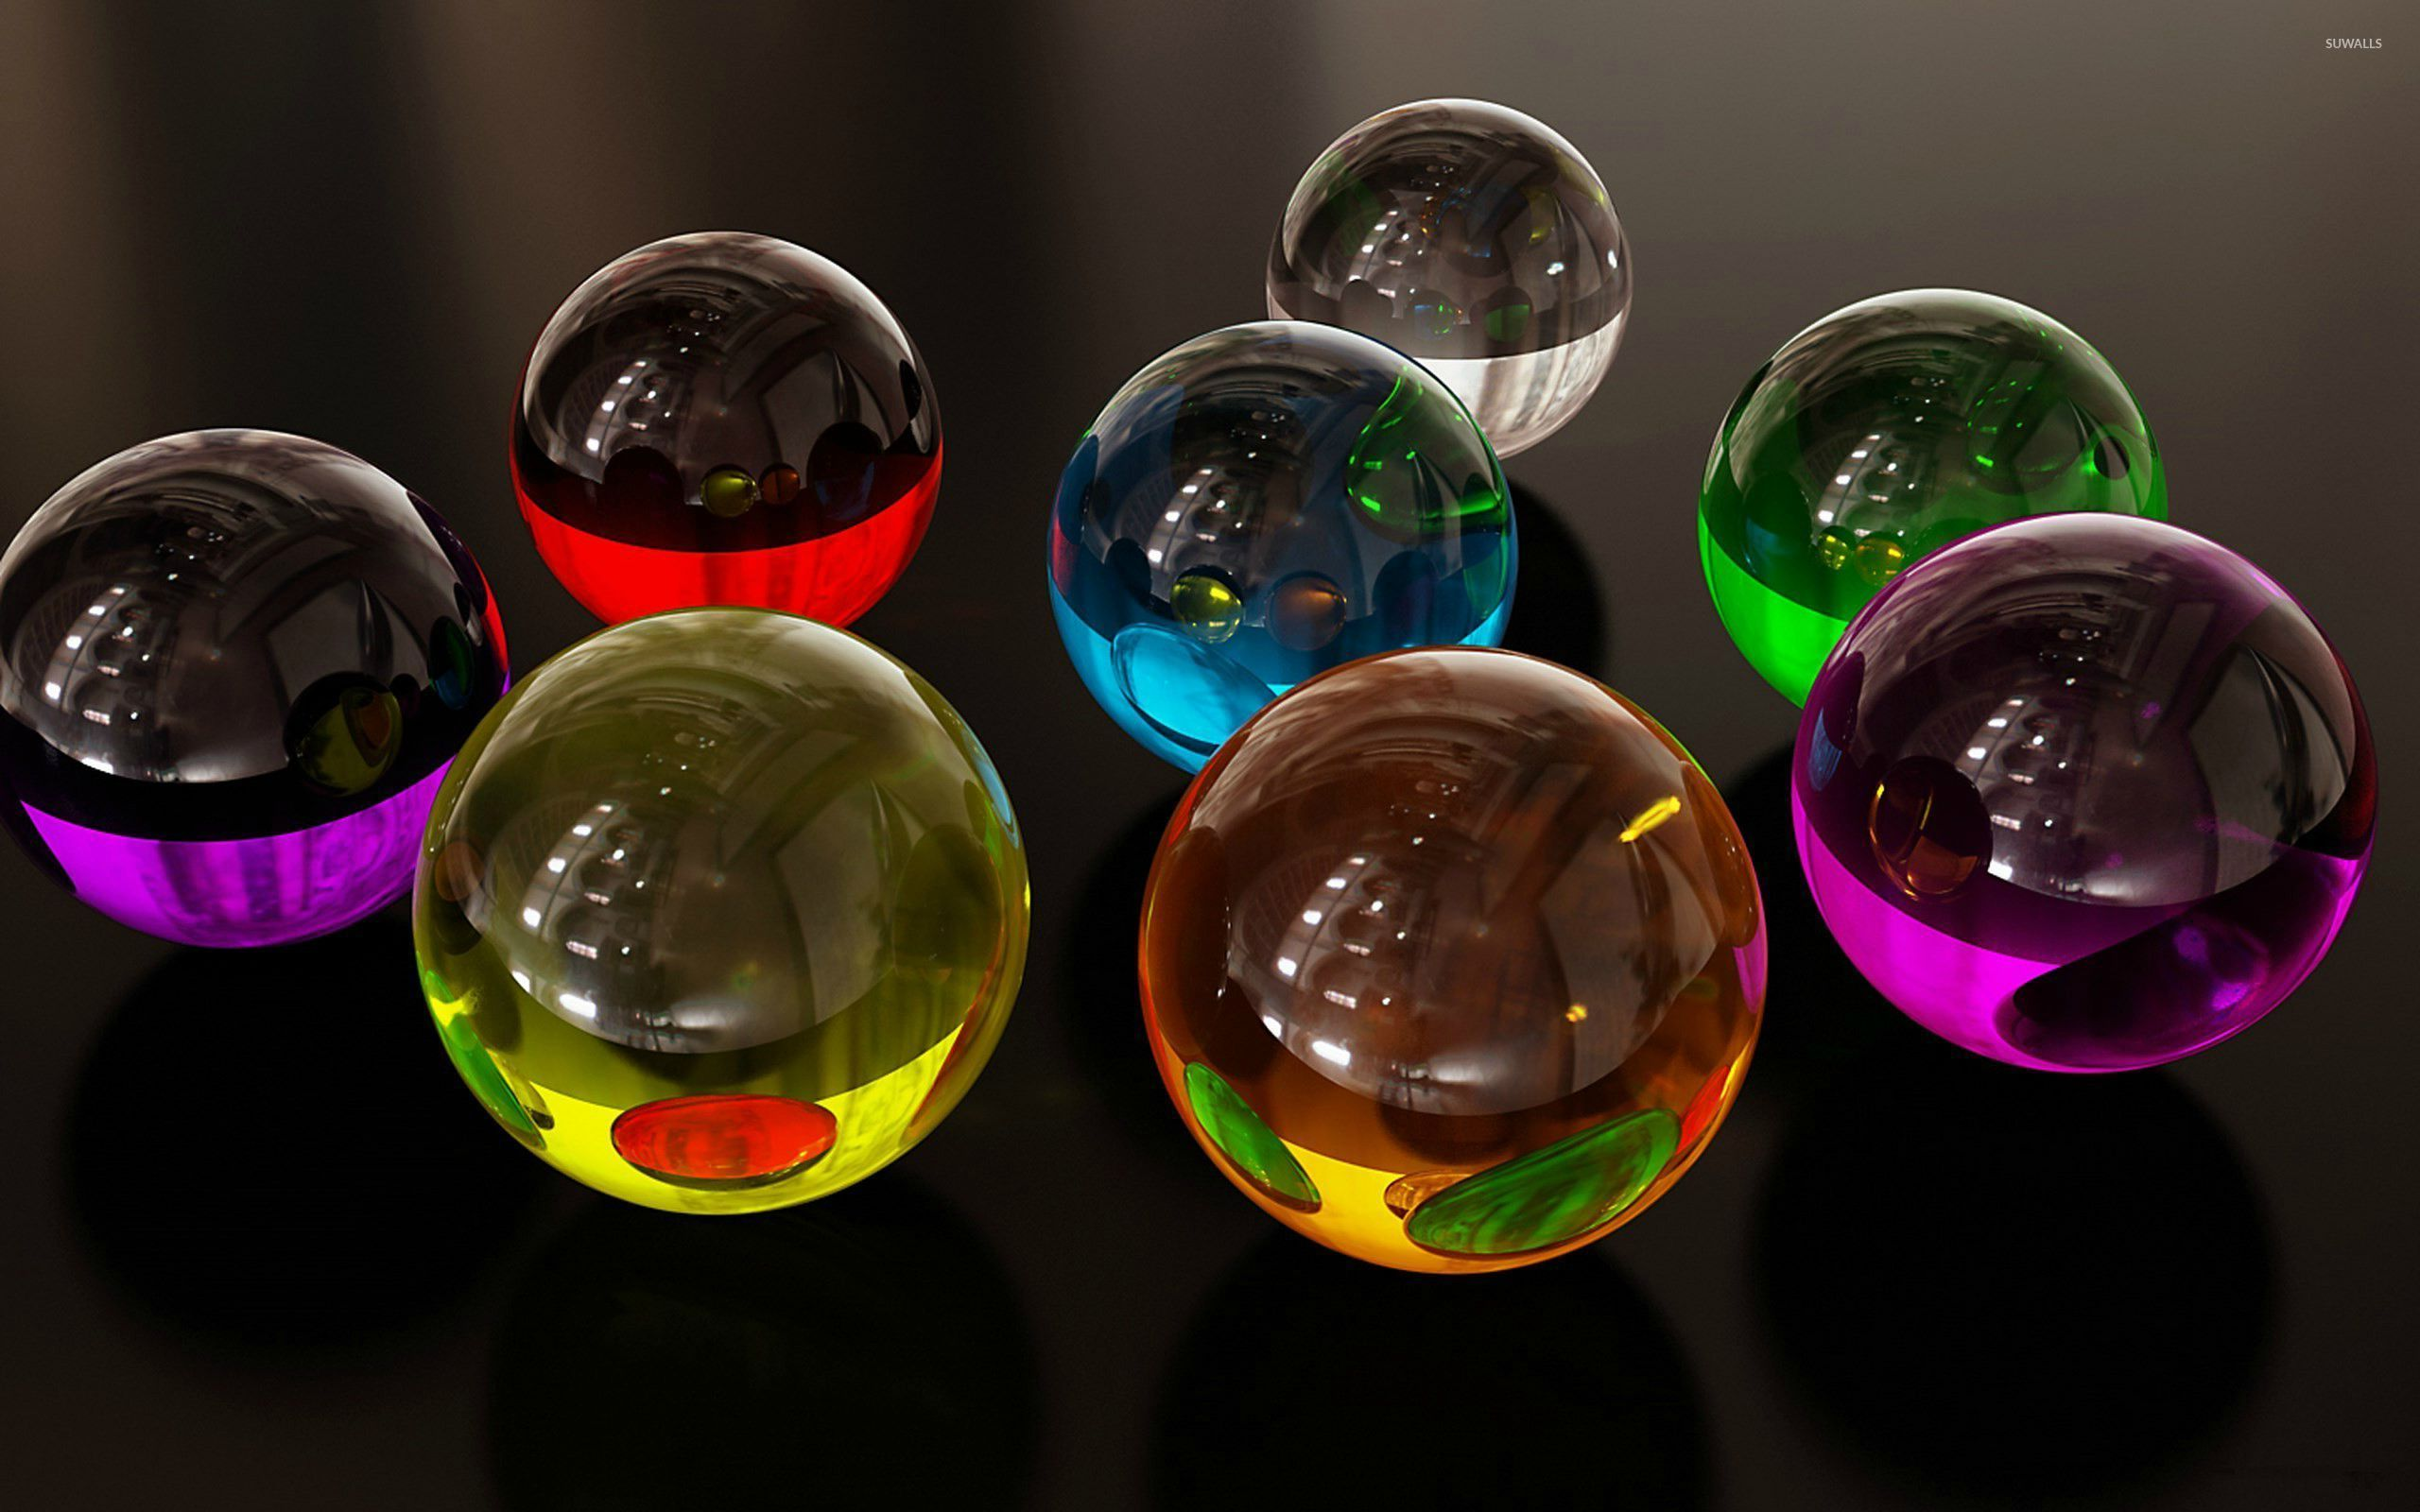 Glass marbles wallpaper 3d wallpapers 27205 for 3d marble wallpaper